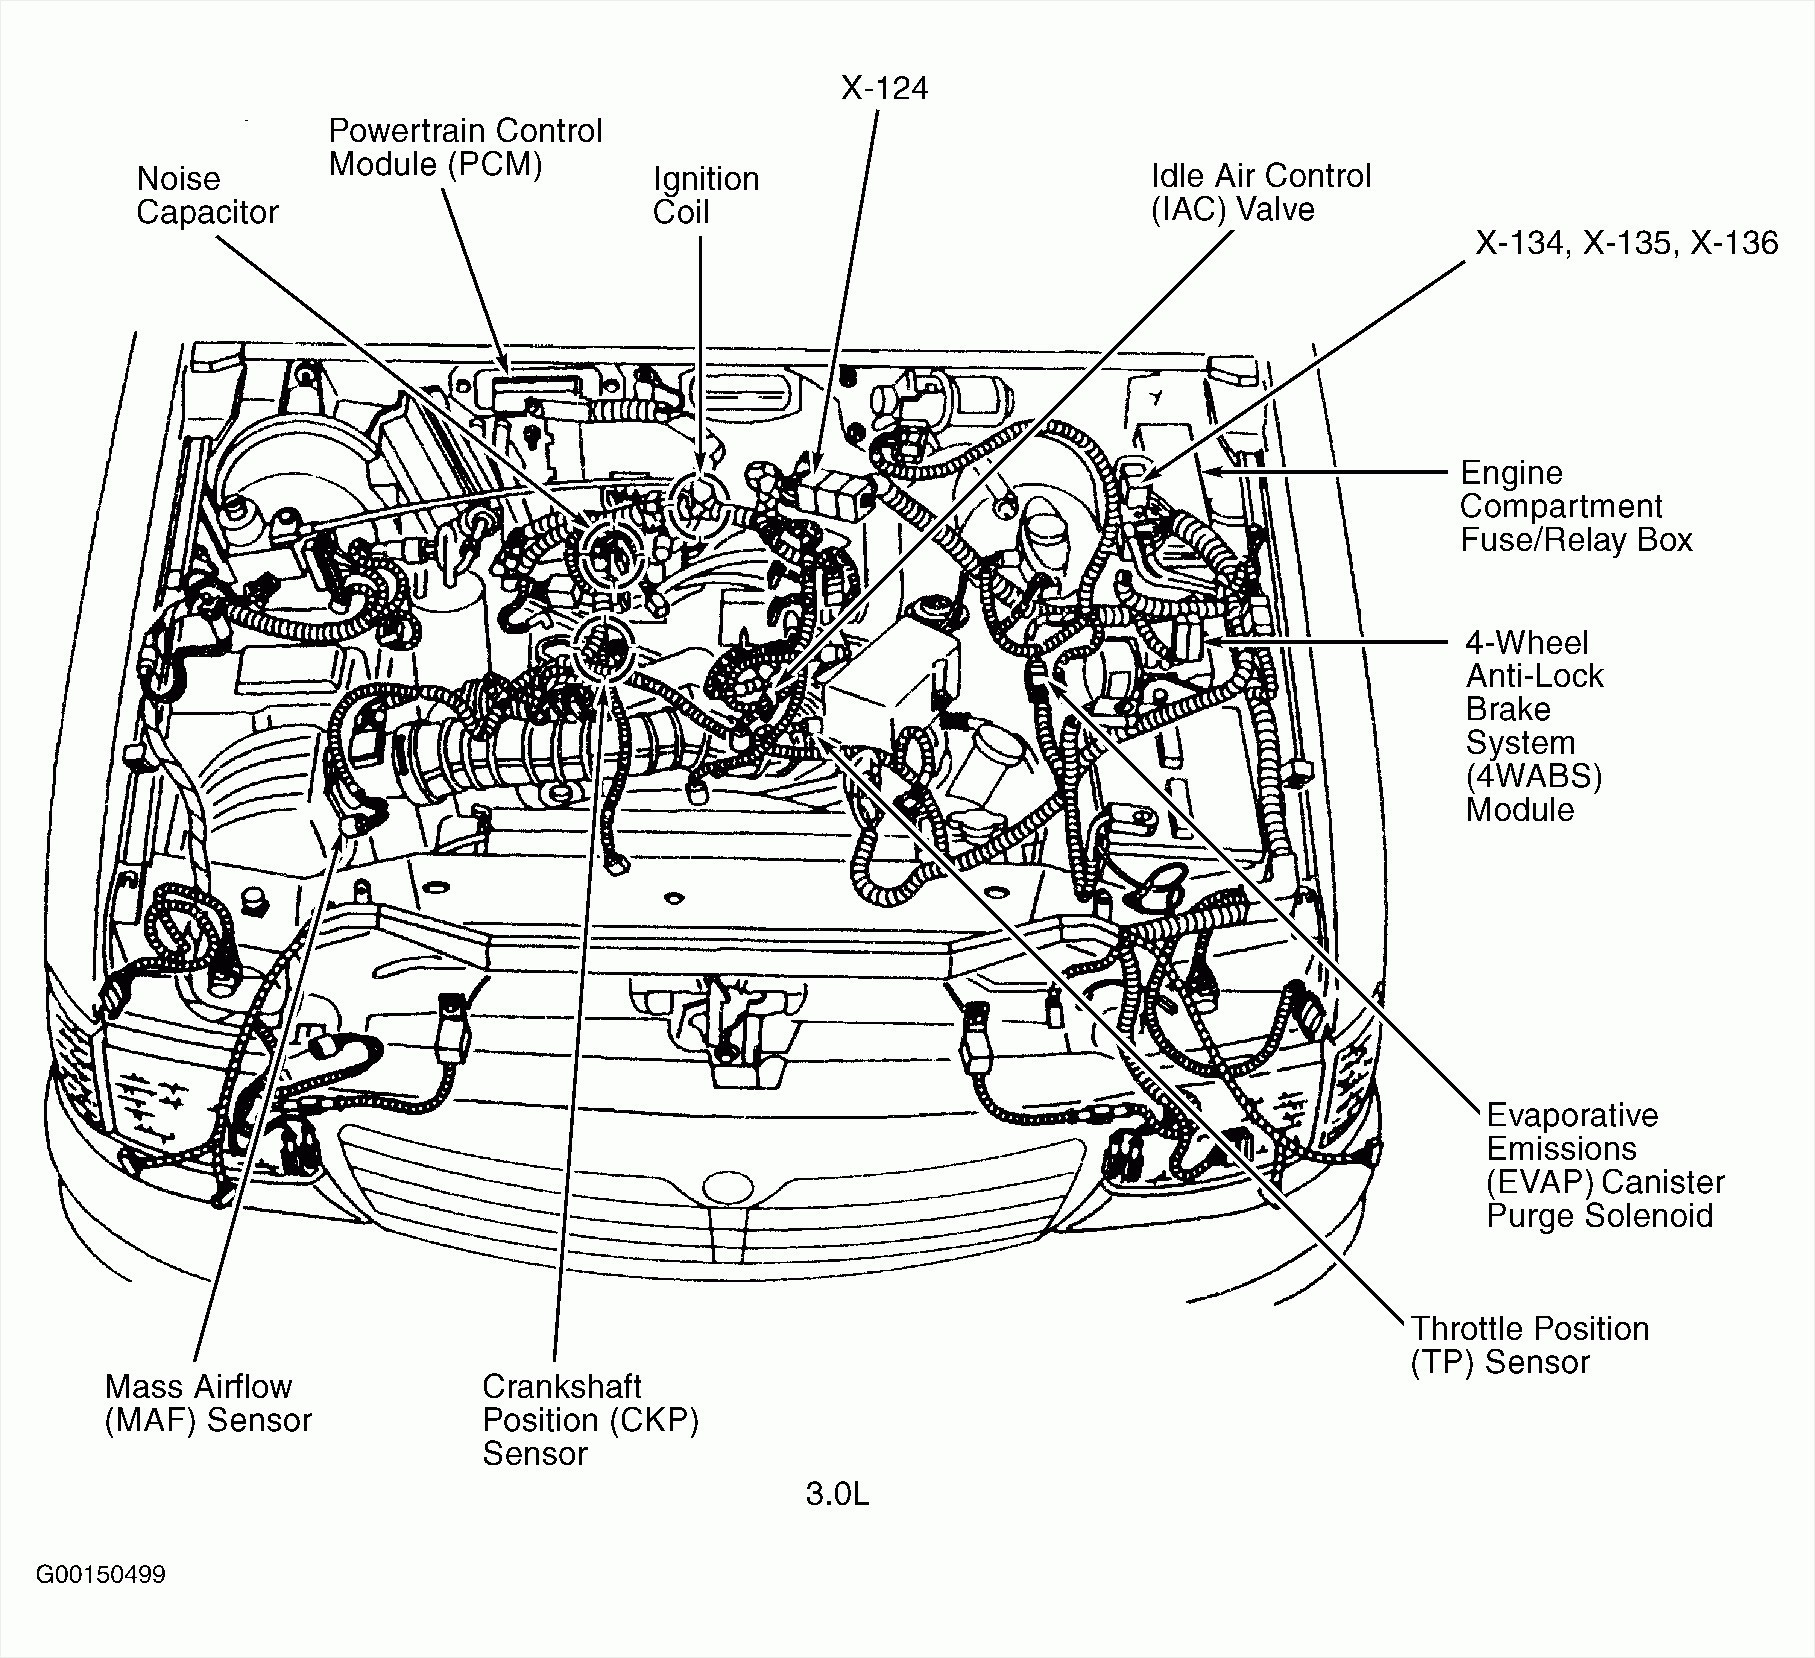 Zetec Engine Diagram 3 0l V6 Engine Diagram Full Hd Version Engine Diagram Liza Of Zetec Engine Diagram